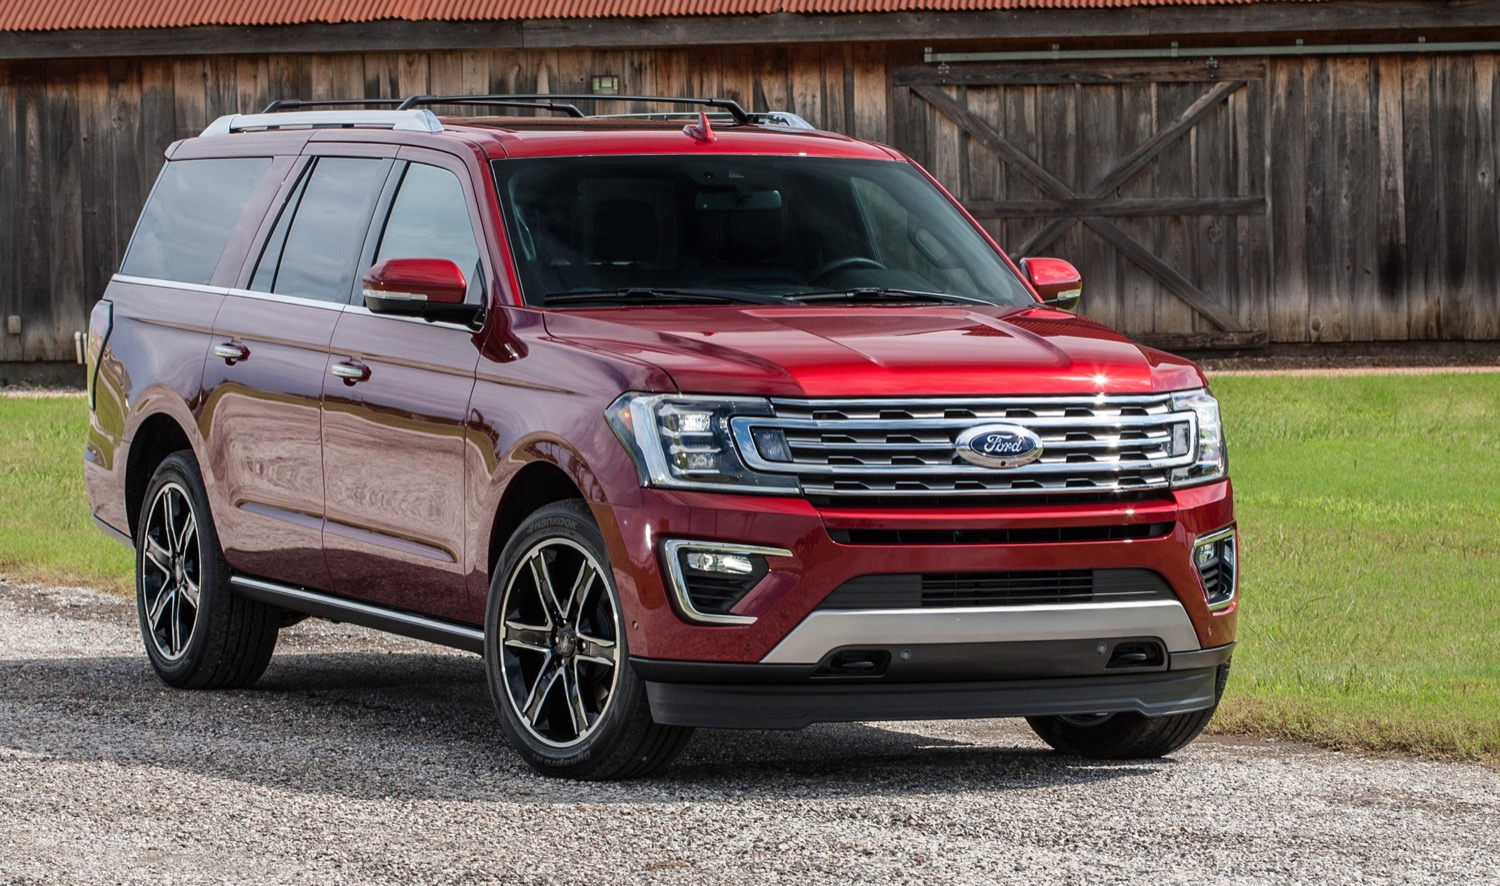 Ford Expedition Discount Reduces Price20% In July 2019